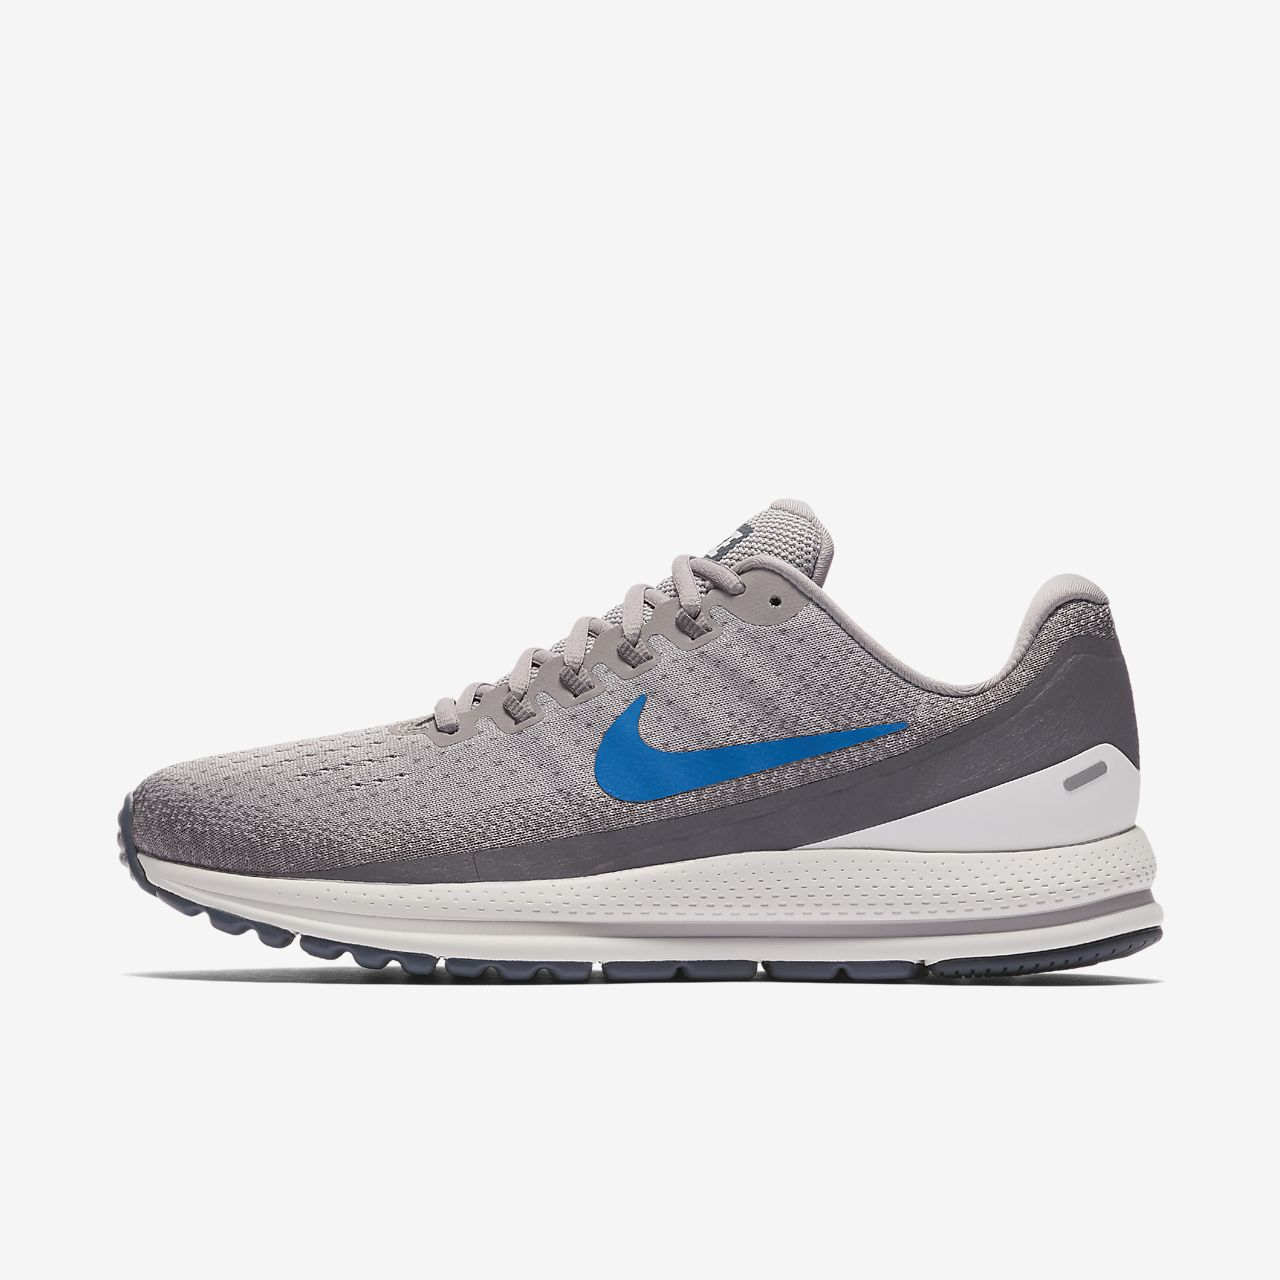 Nike Air Zoom Vomero 13 Men's Running Shoes White/Blue xU7784V